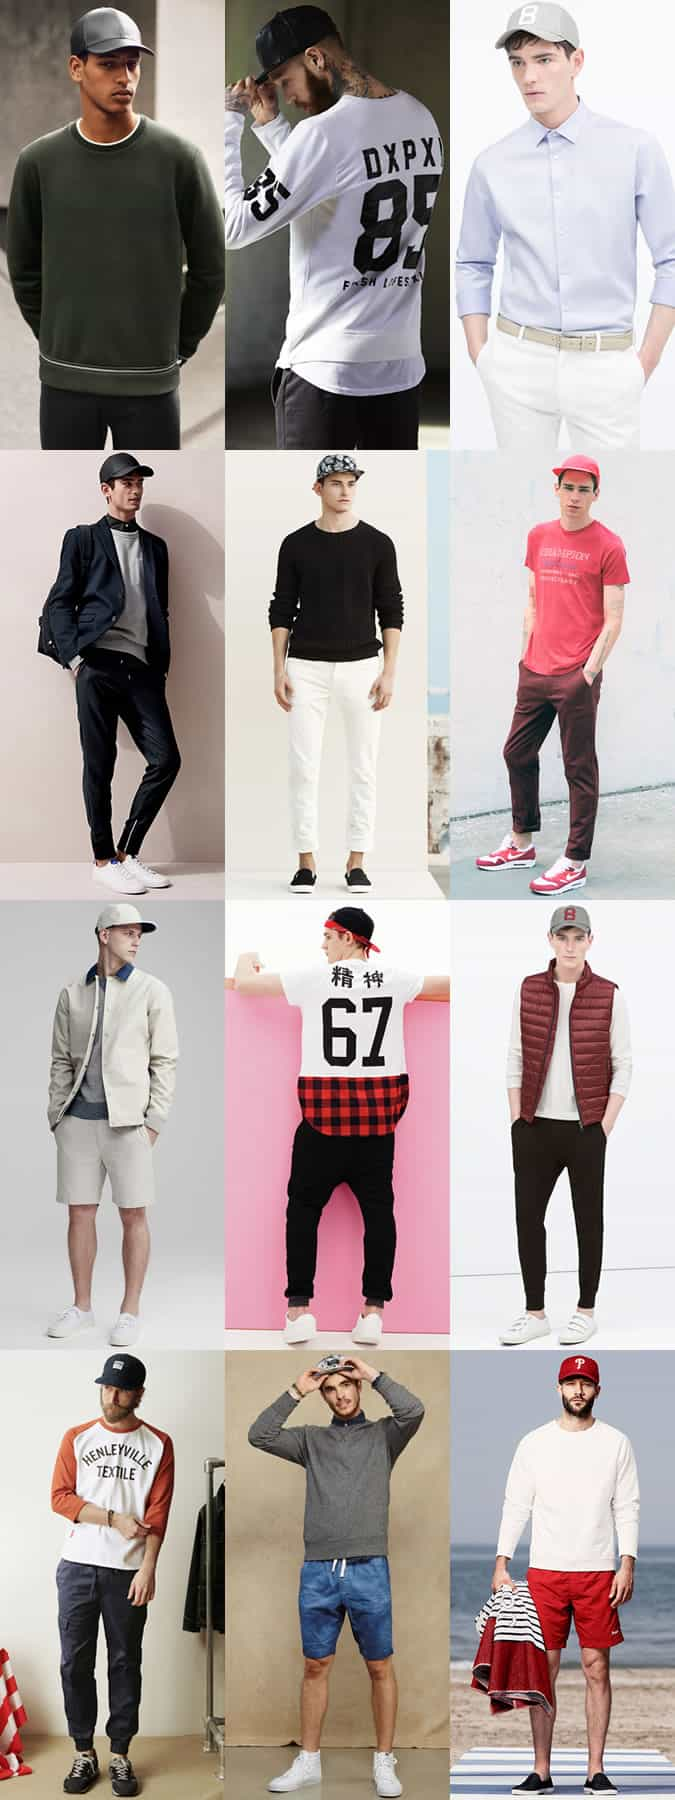 Men's Snapback/Baseball Cap Outfit Inspiration Lookbook